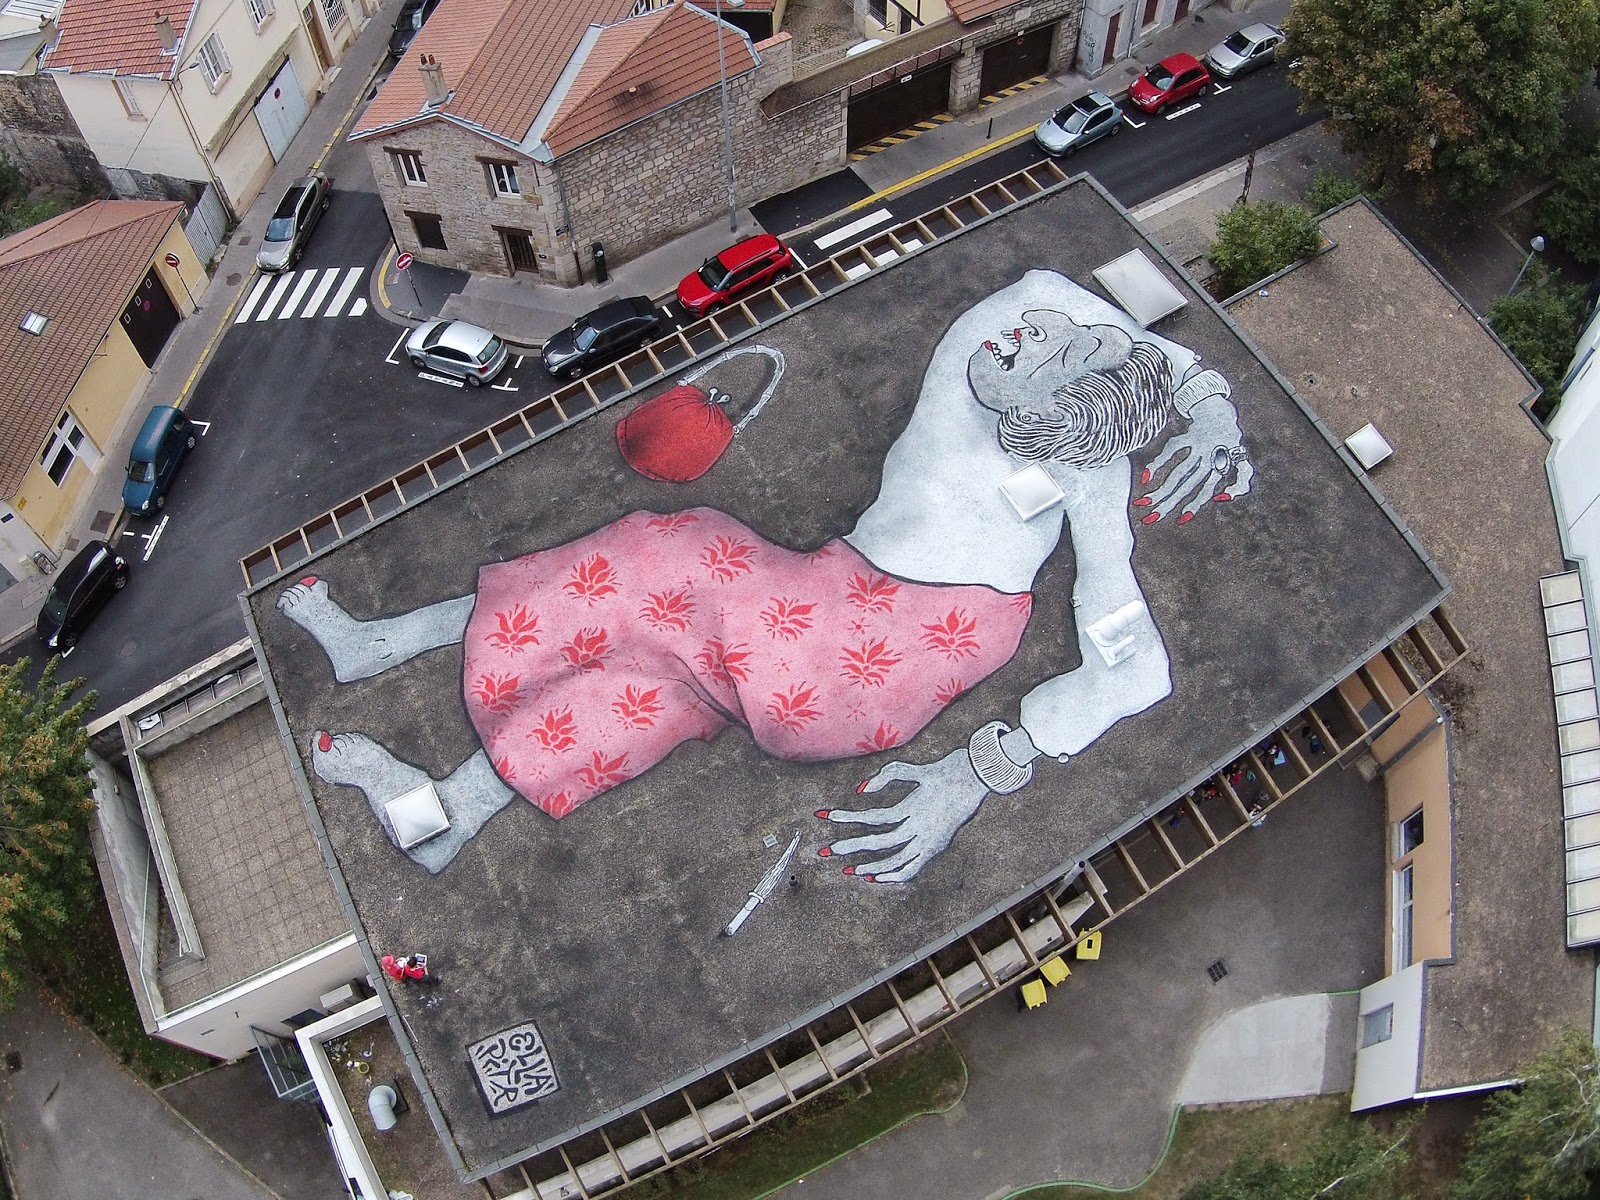 Ella & Pitr are still working around the streets of their hometown, Saint-Etienne in France where they just finished working on yet another giant piece.